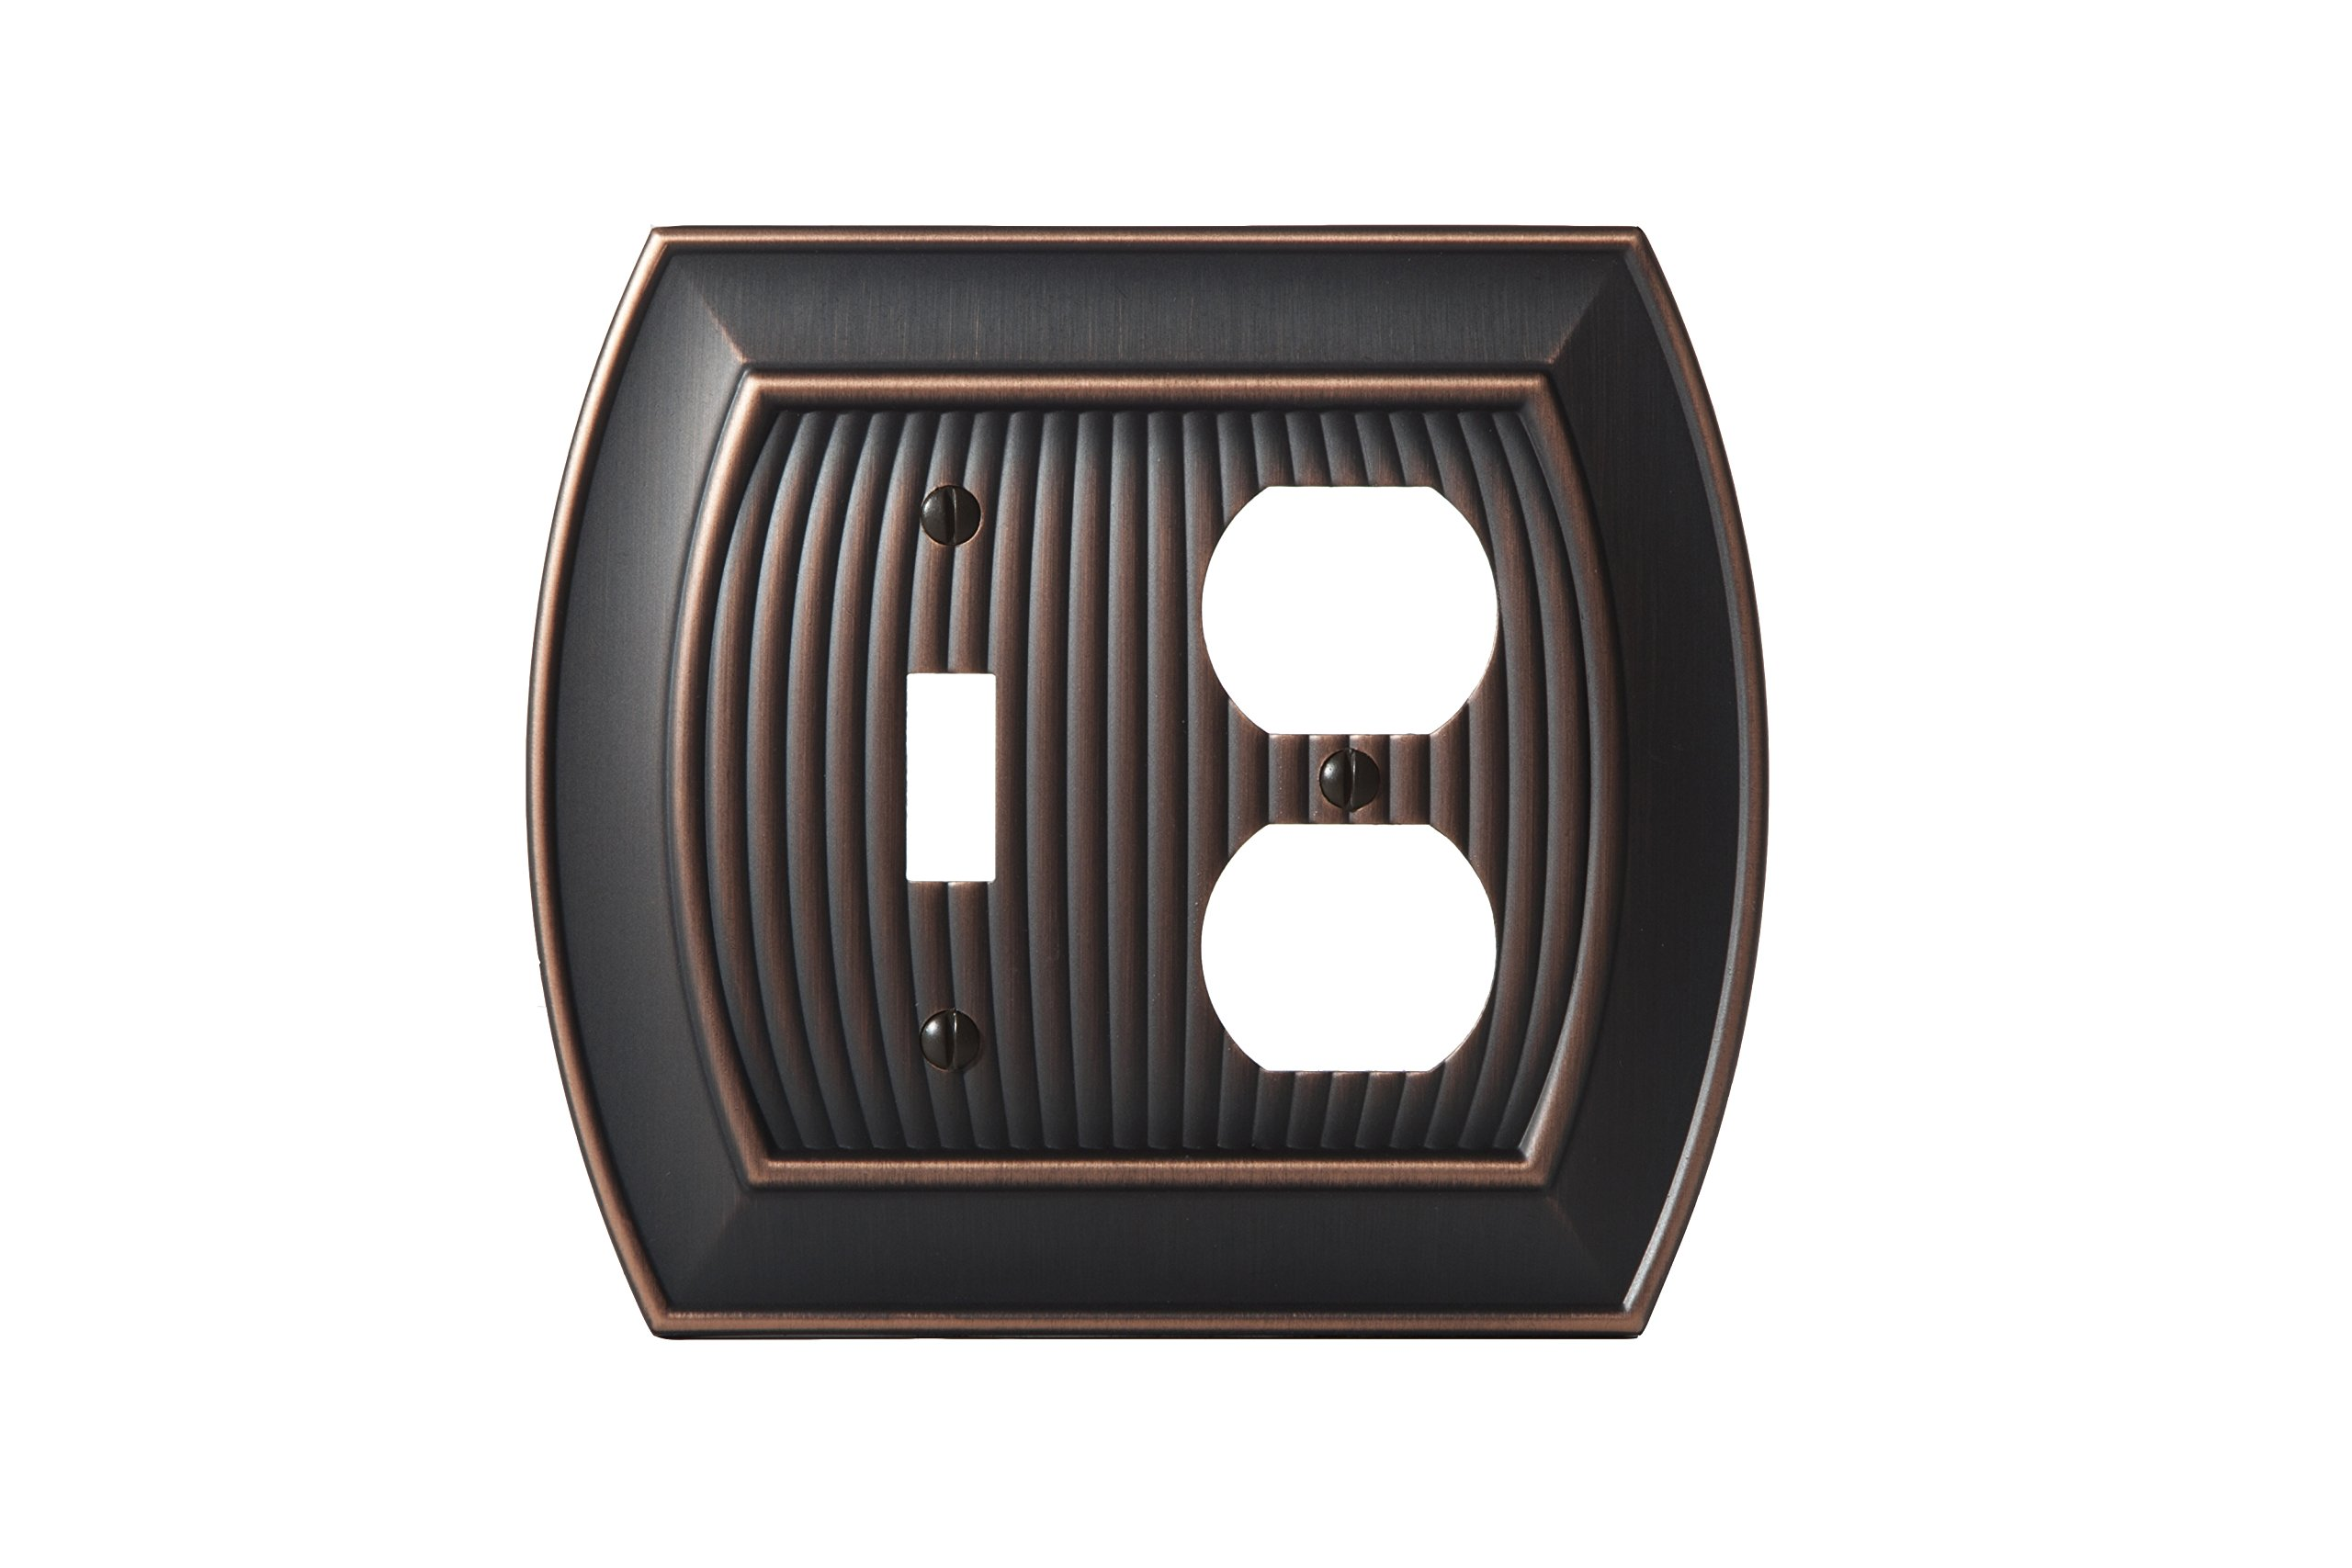 Amerock BP36538ORB Allison 1 Toggle, 1 Receptacle Wall Plate - Oil-Rubbed Bronze by Amerock